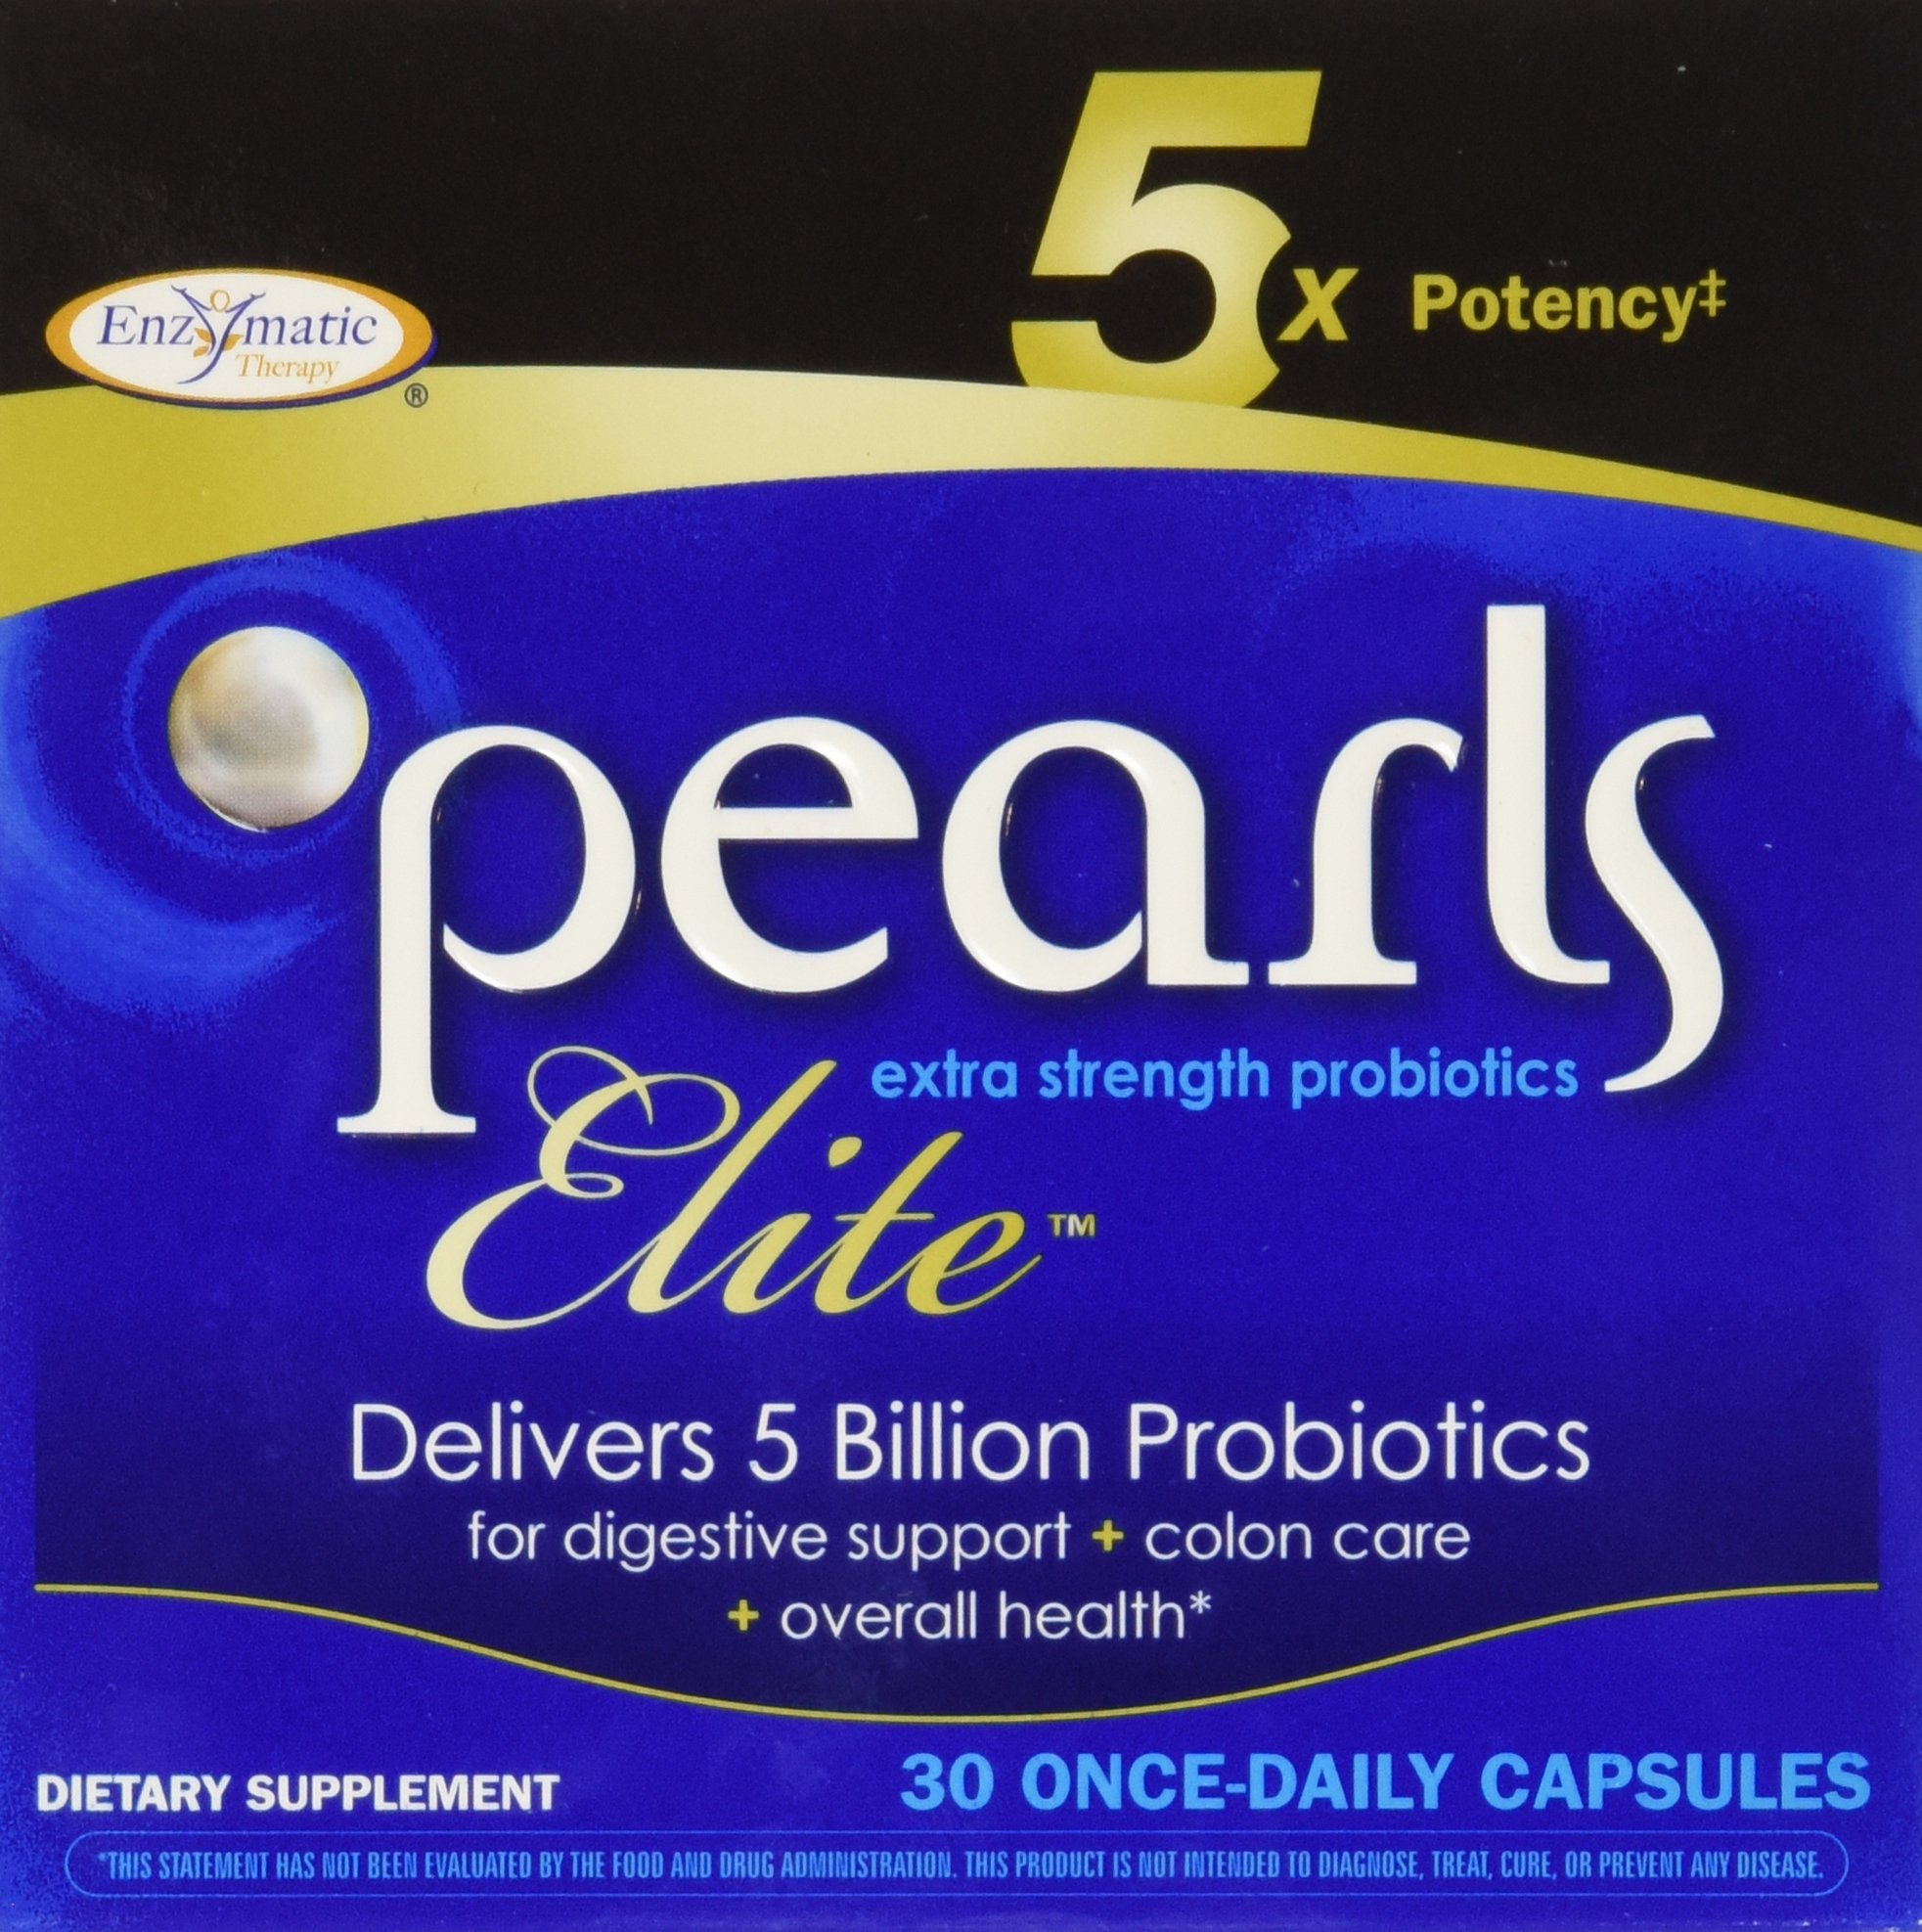 Pearls Elite High Potency Probiotics, 30 Capsules, From Enzymatic Therapy ( Multi-Pack)